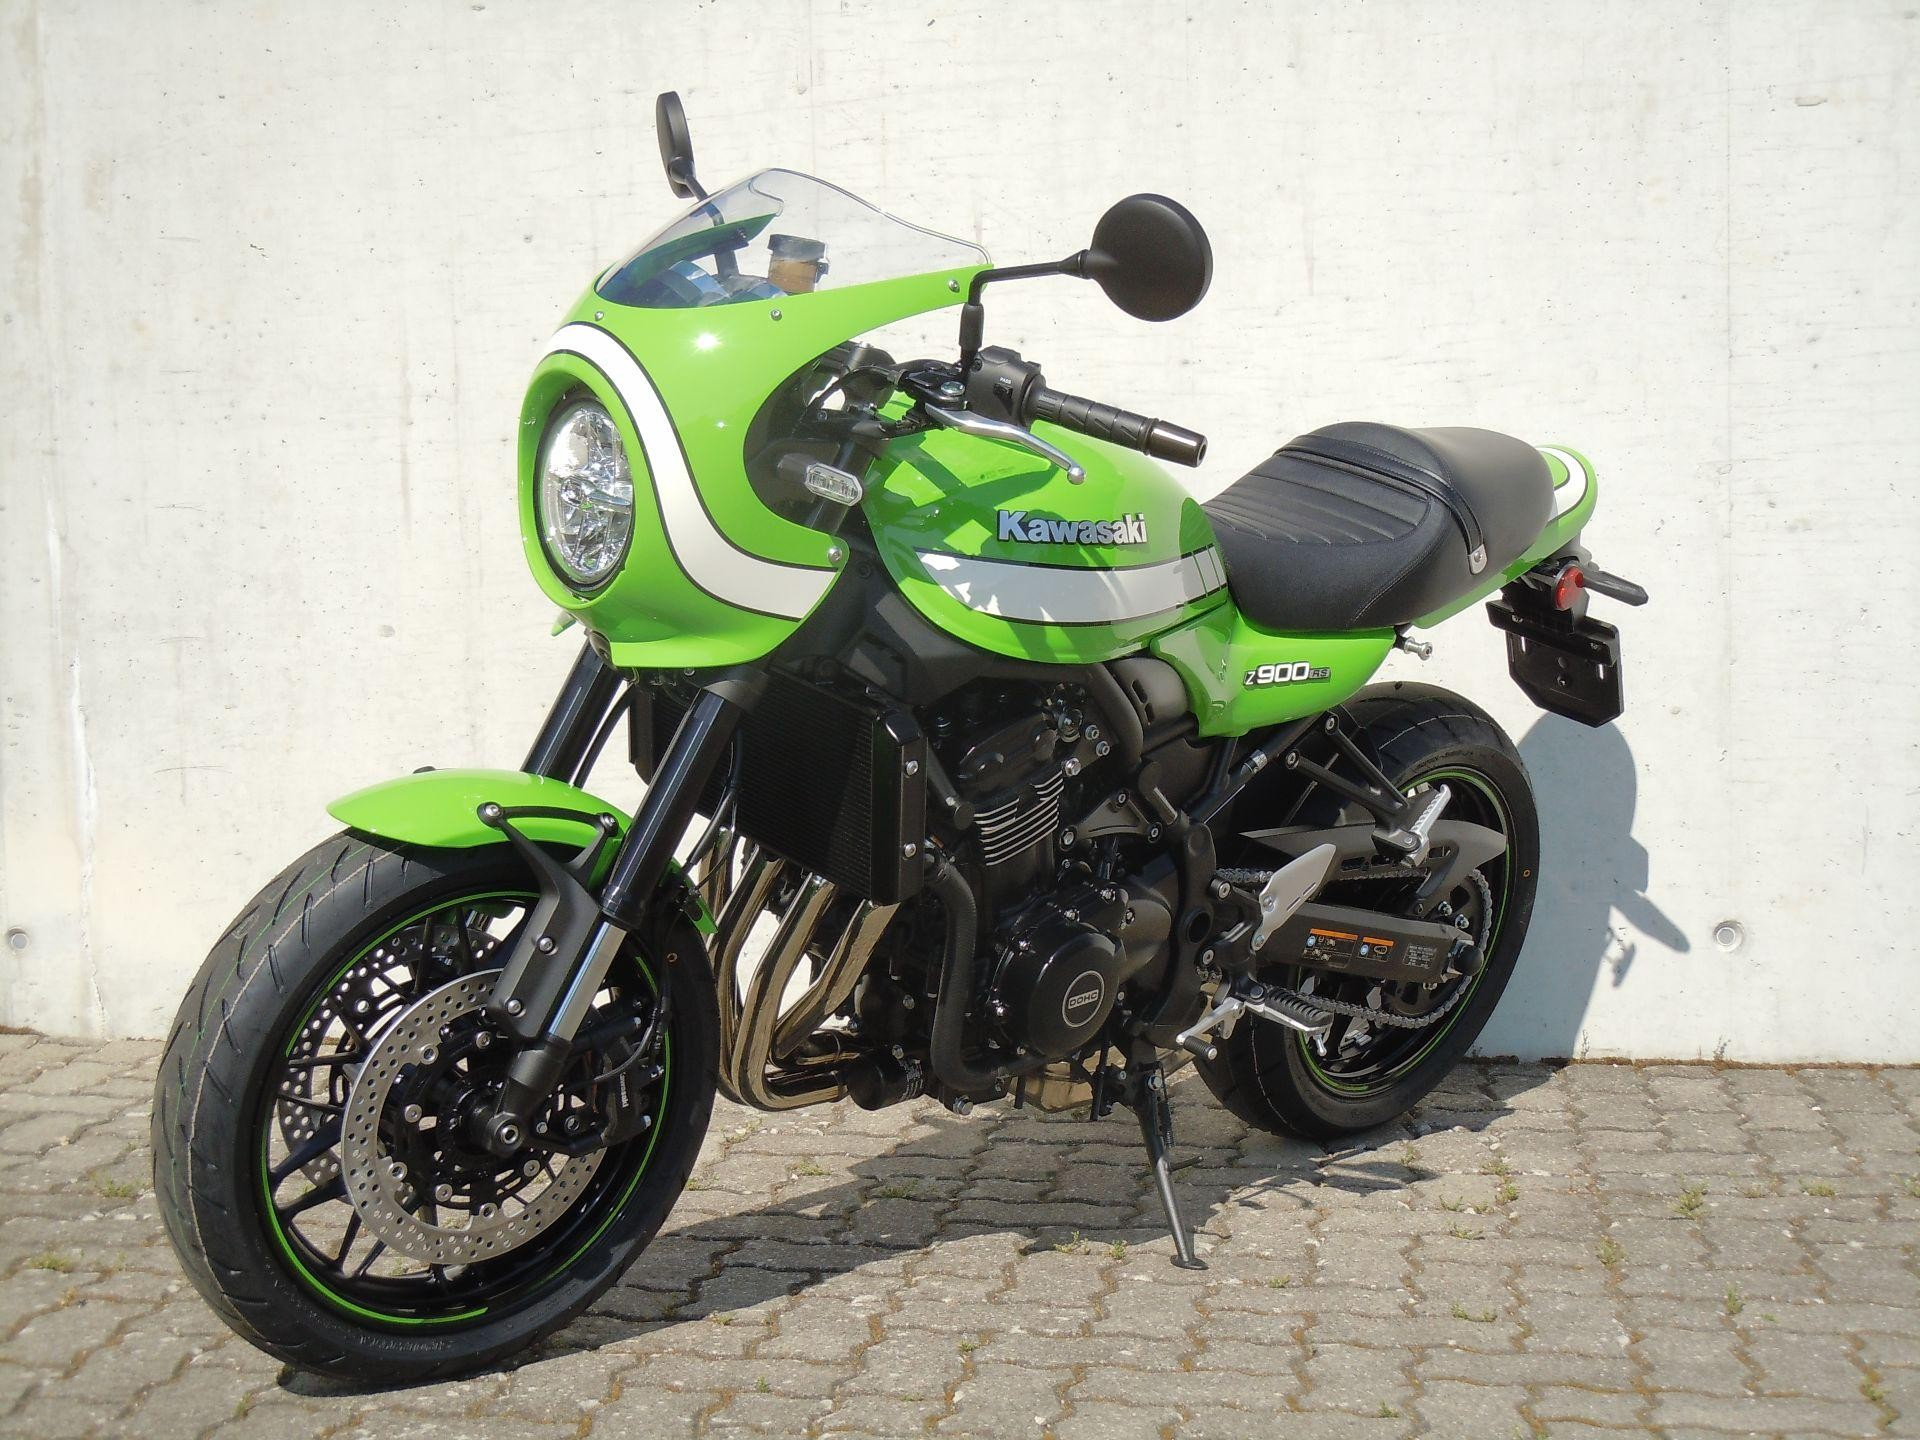 KAWASAKI Z 900 RS Cafe 18 New Vehicle Bike